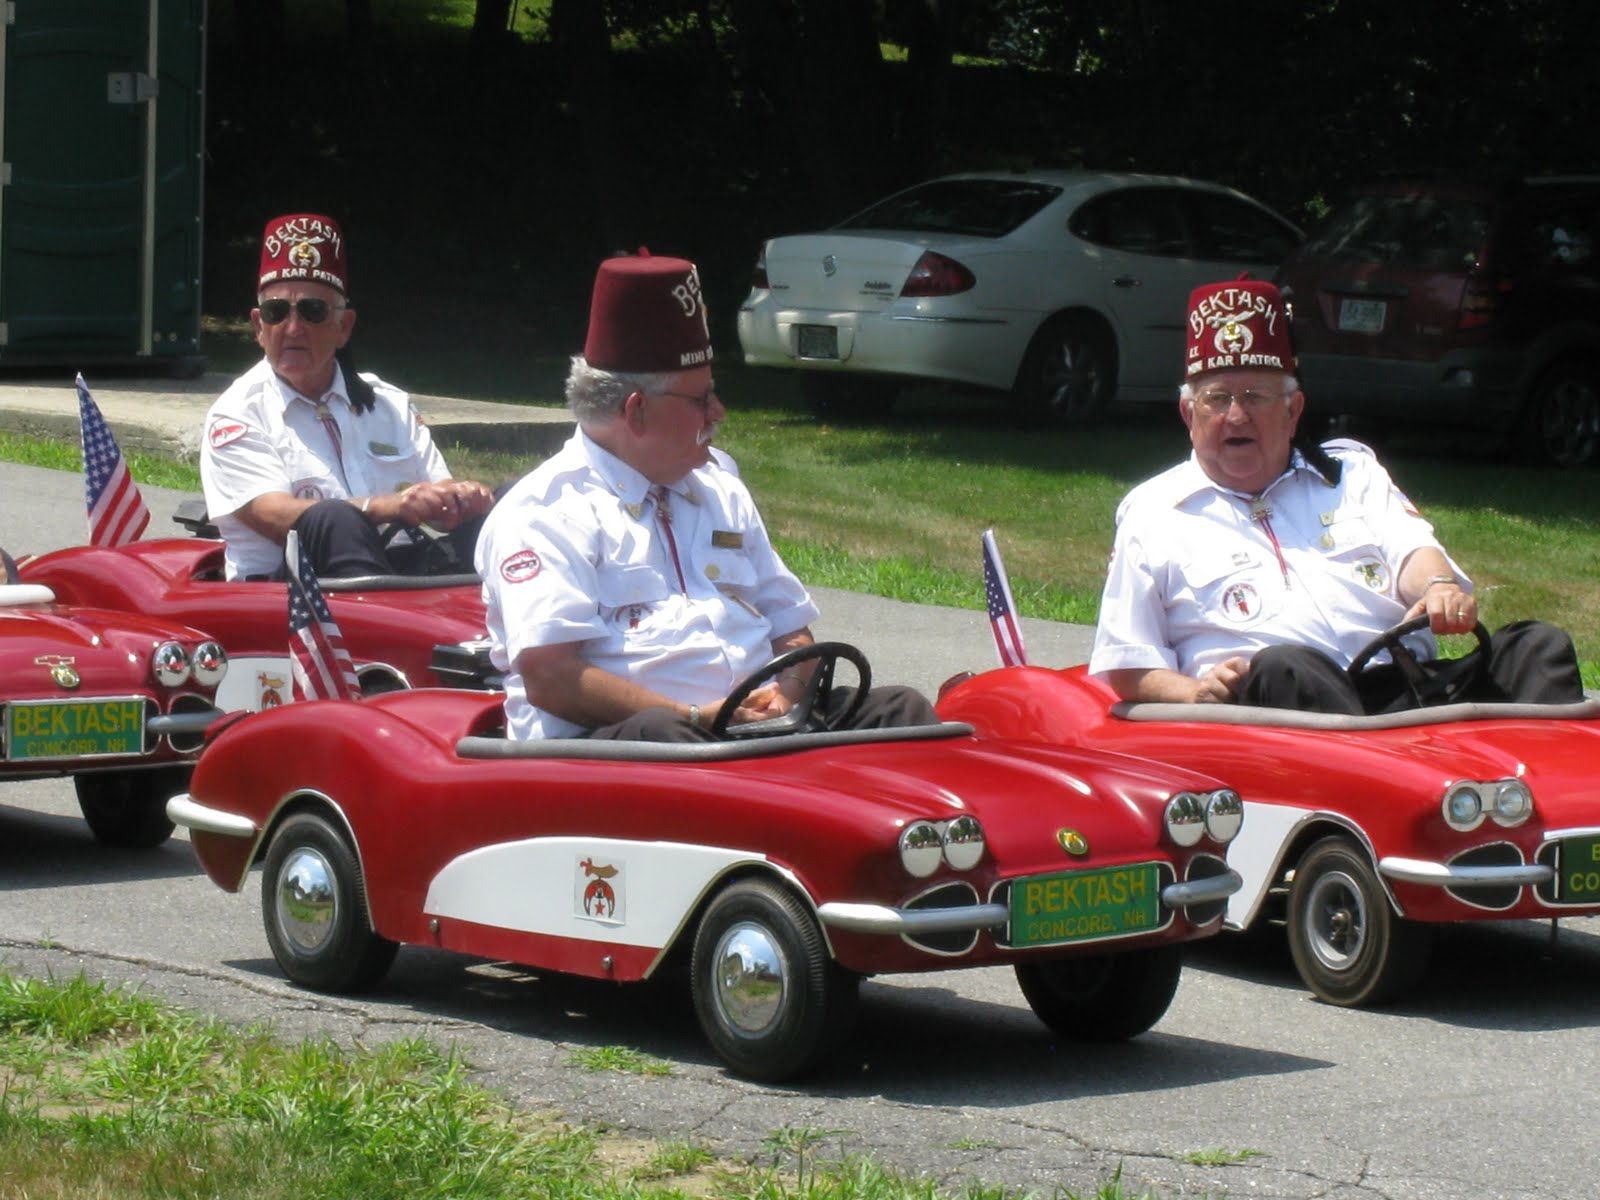 Shriner Car: The Repertory: Words Matter: July 18, 2010